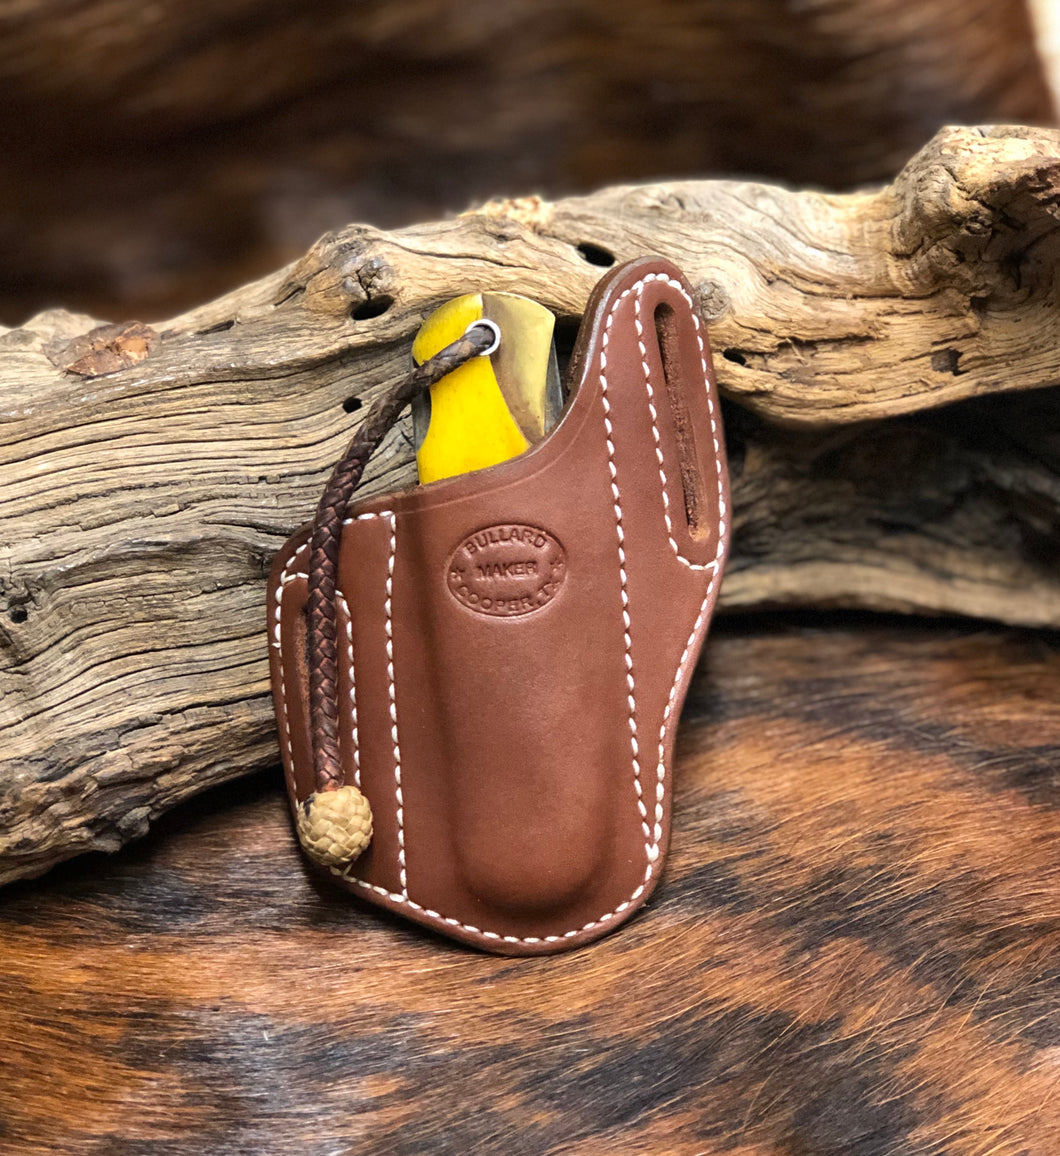 Forward Slant Knife Sheath for 2 Blade Folding Hunter